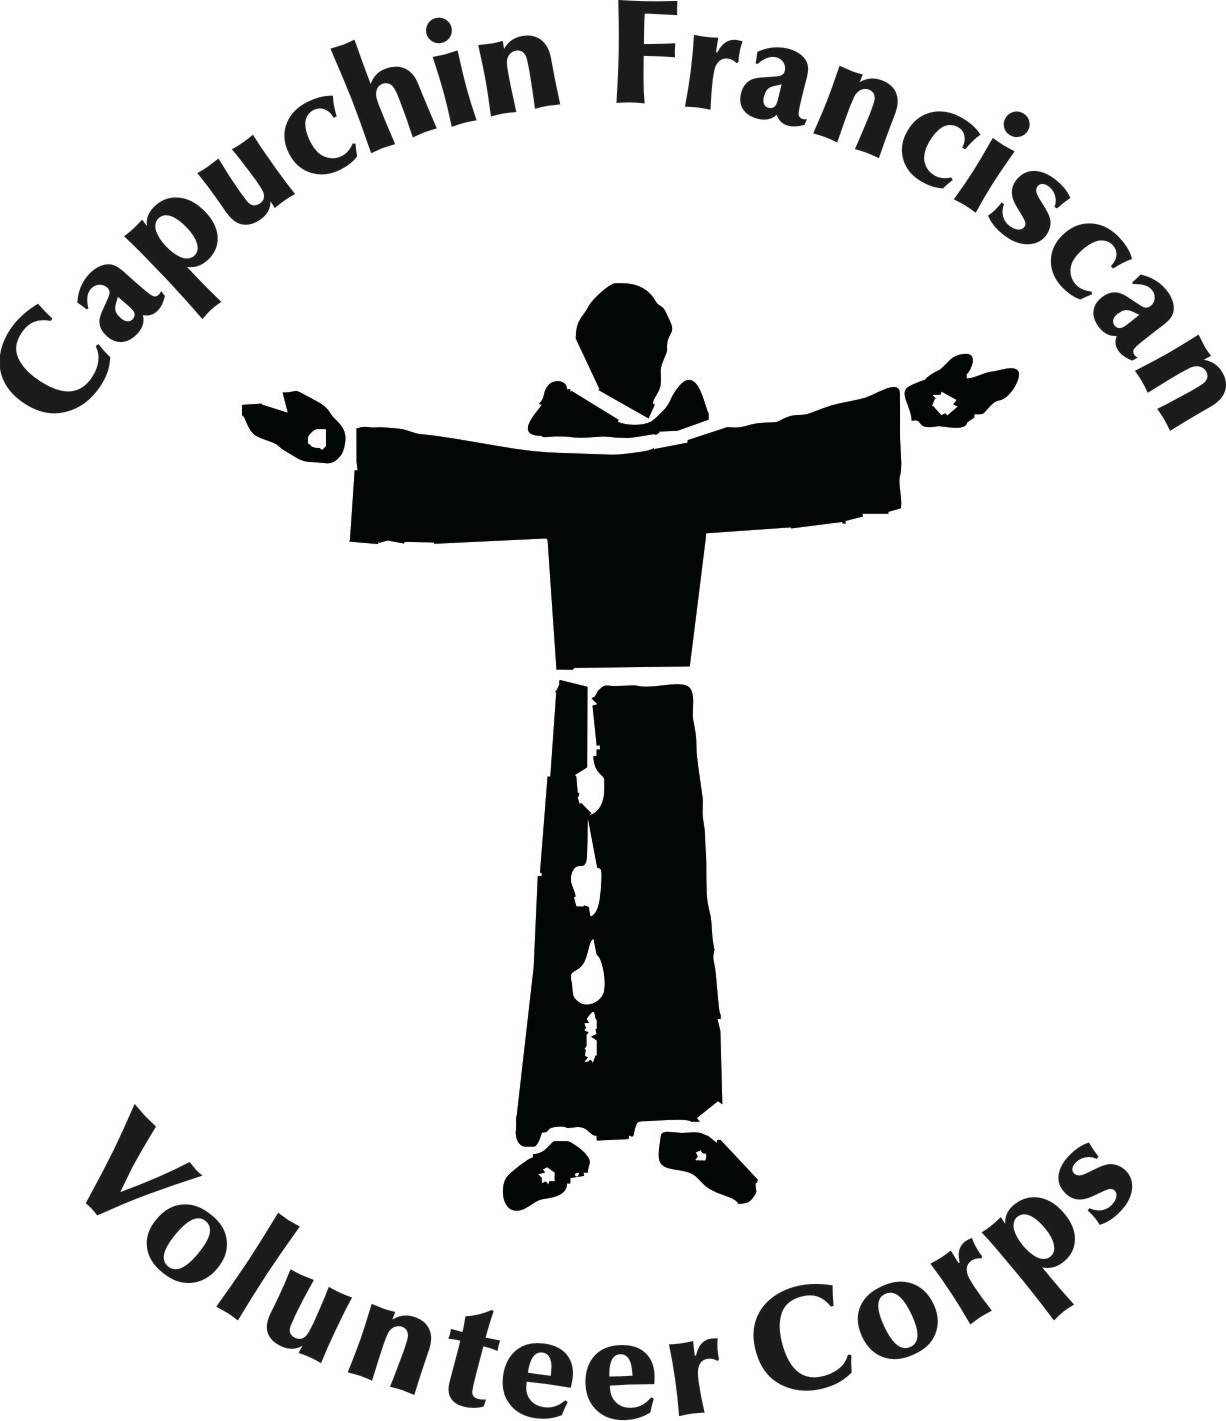 Logo of Capuchin Franciscan Volunteer Corps - Cap Corps